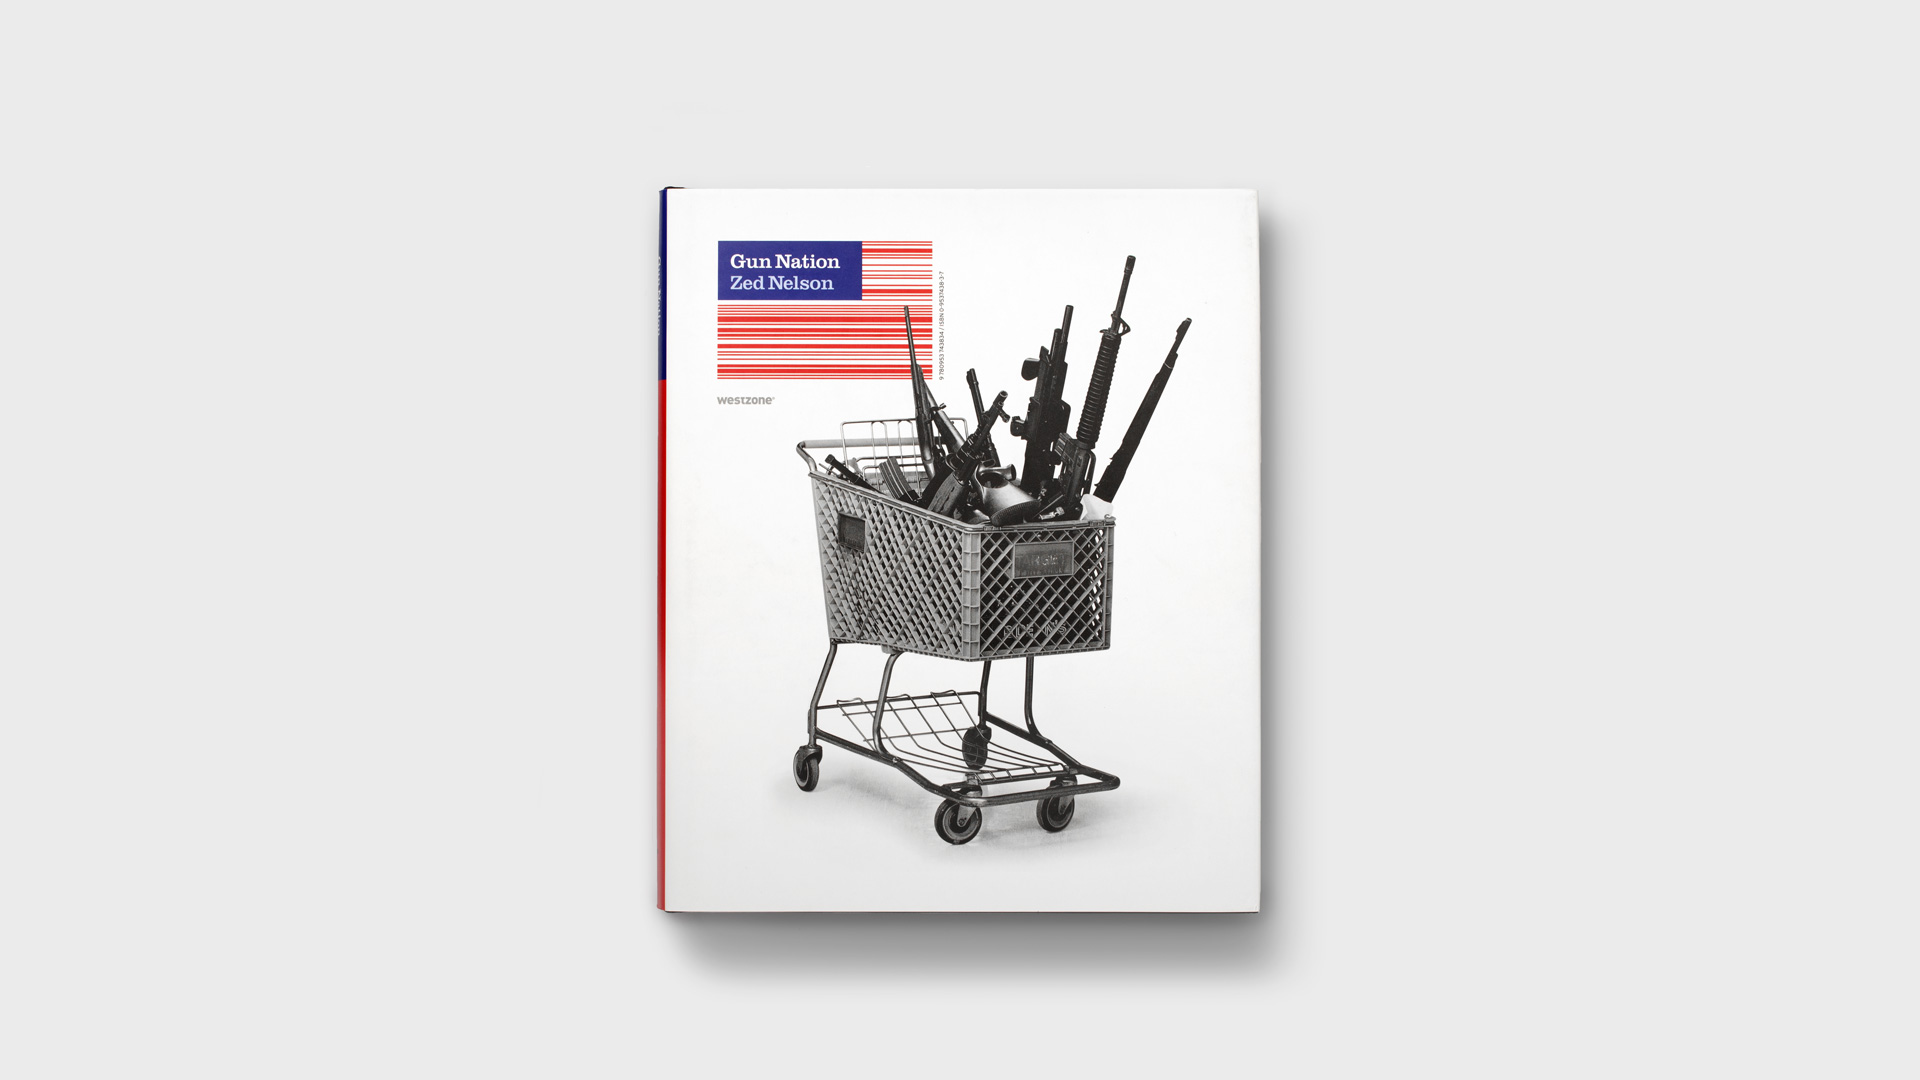 Zed Nelson's Gun Nation: publication design